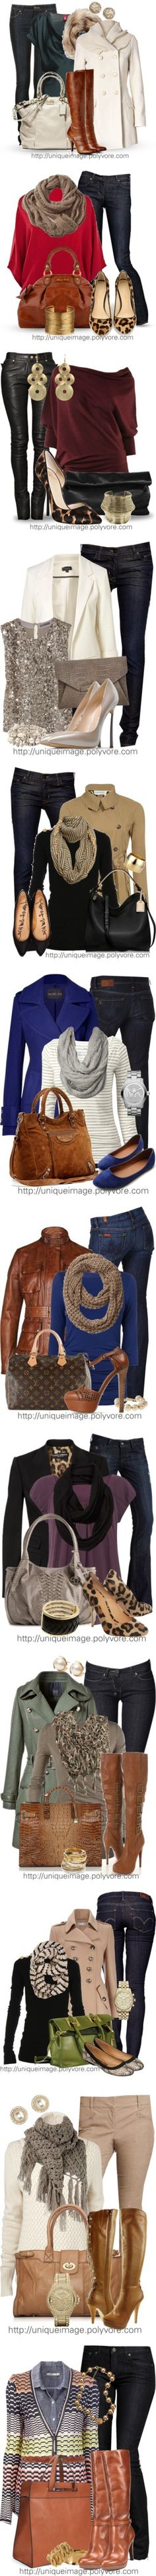 """Fall/Winter Wear"" by uniqueimage ❤ liked on Polyvore"